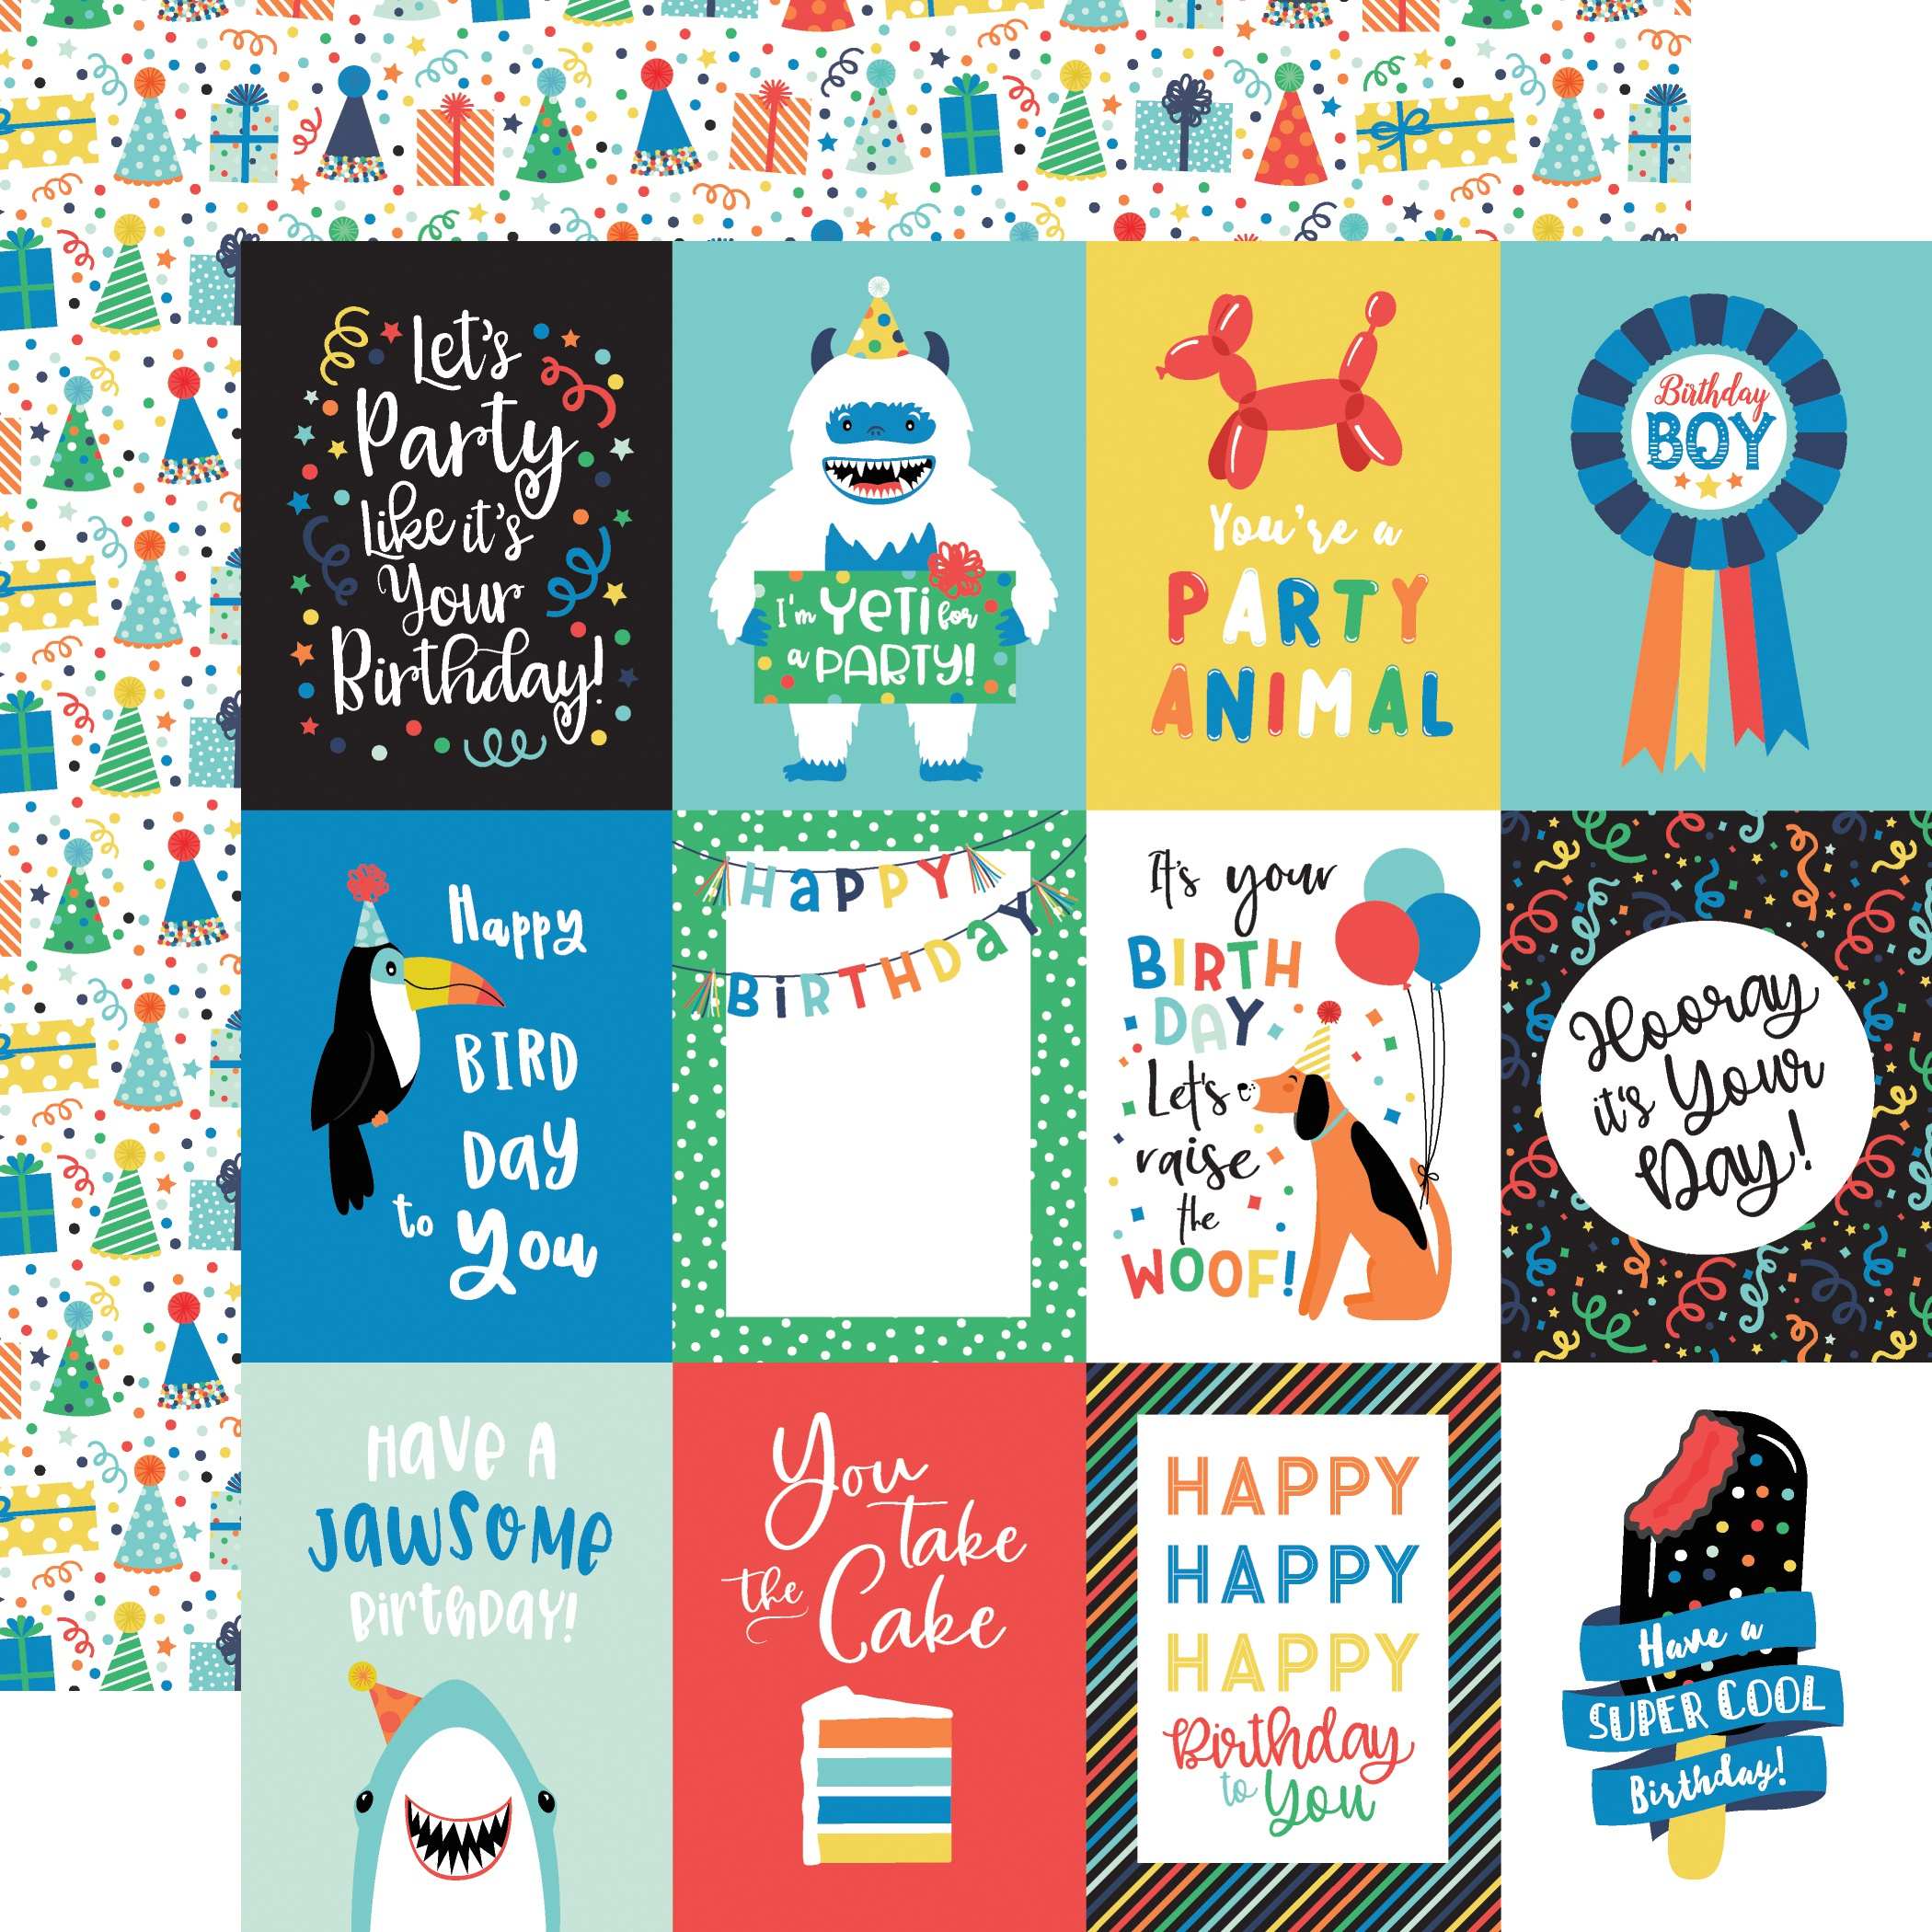 It's Your Birthday Boy Double-Sided Cardstock 12X12-3X4 Journaling Cards